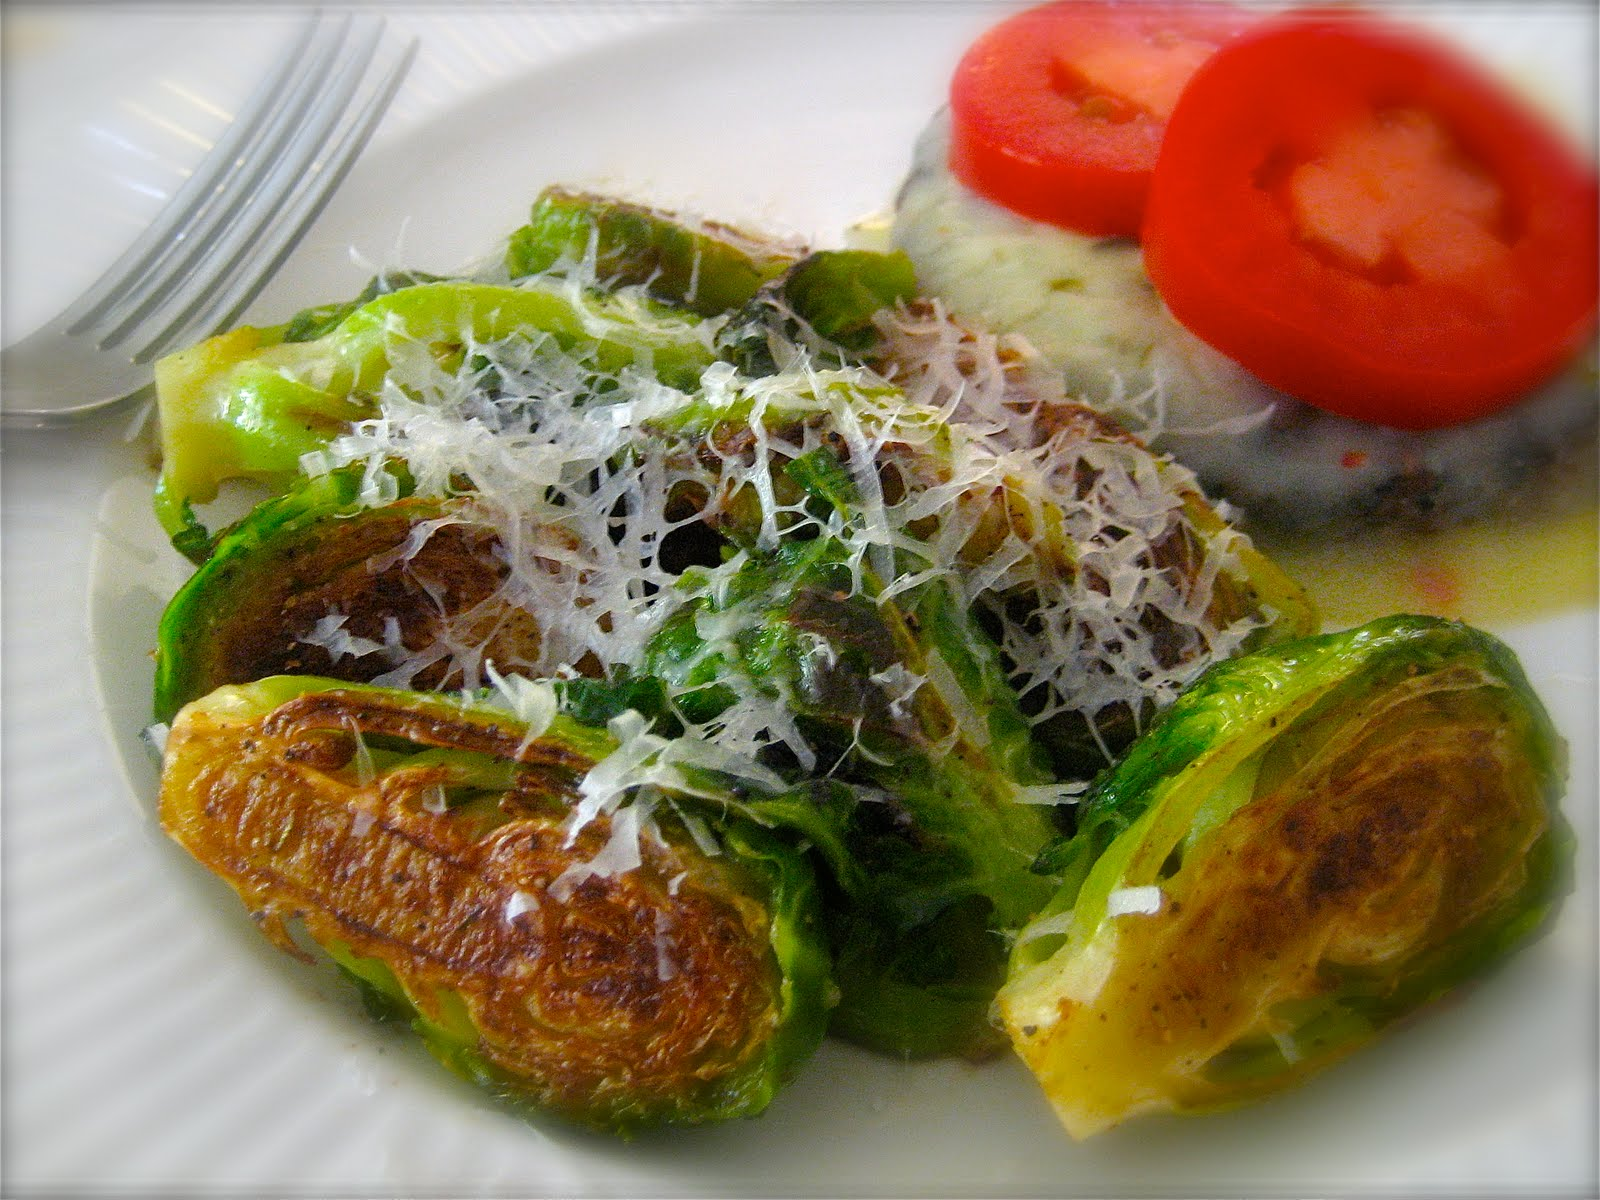 Laura's Lunch: Lunch Rerun ~ Golden Crusted Brussels Sprouts